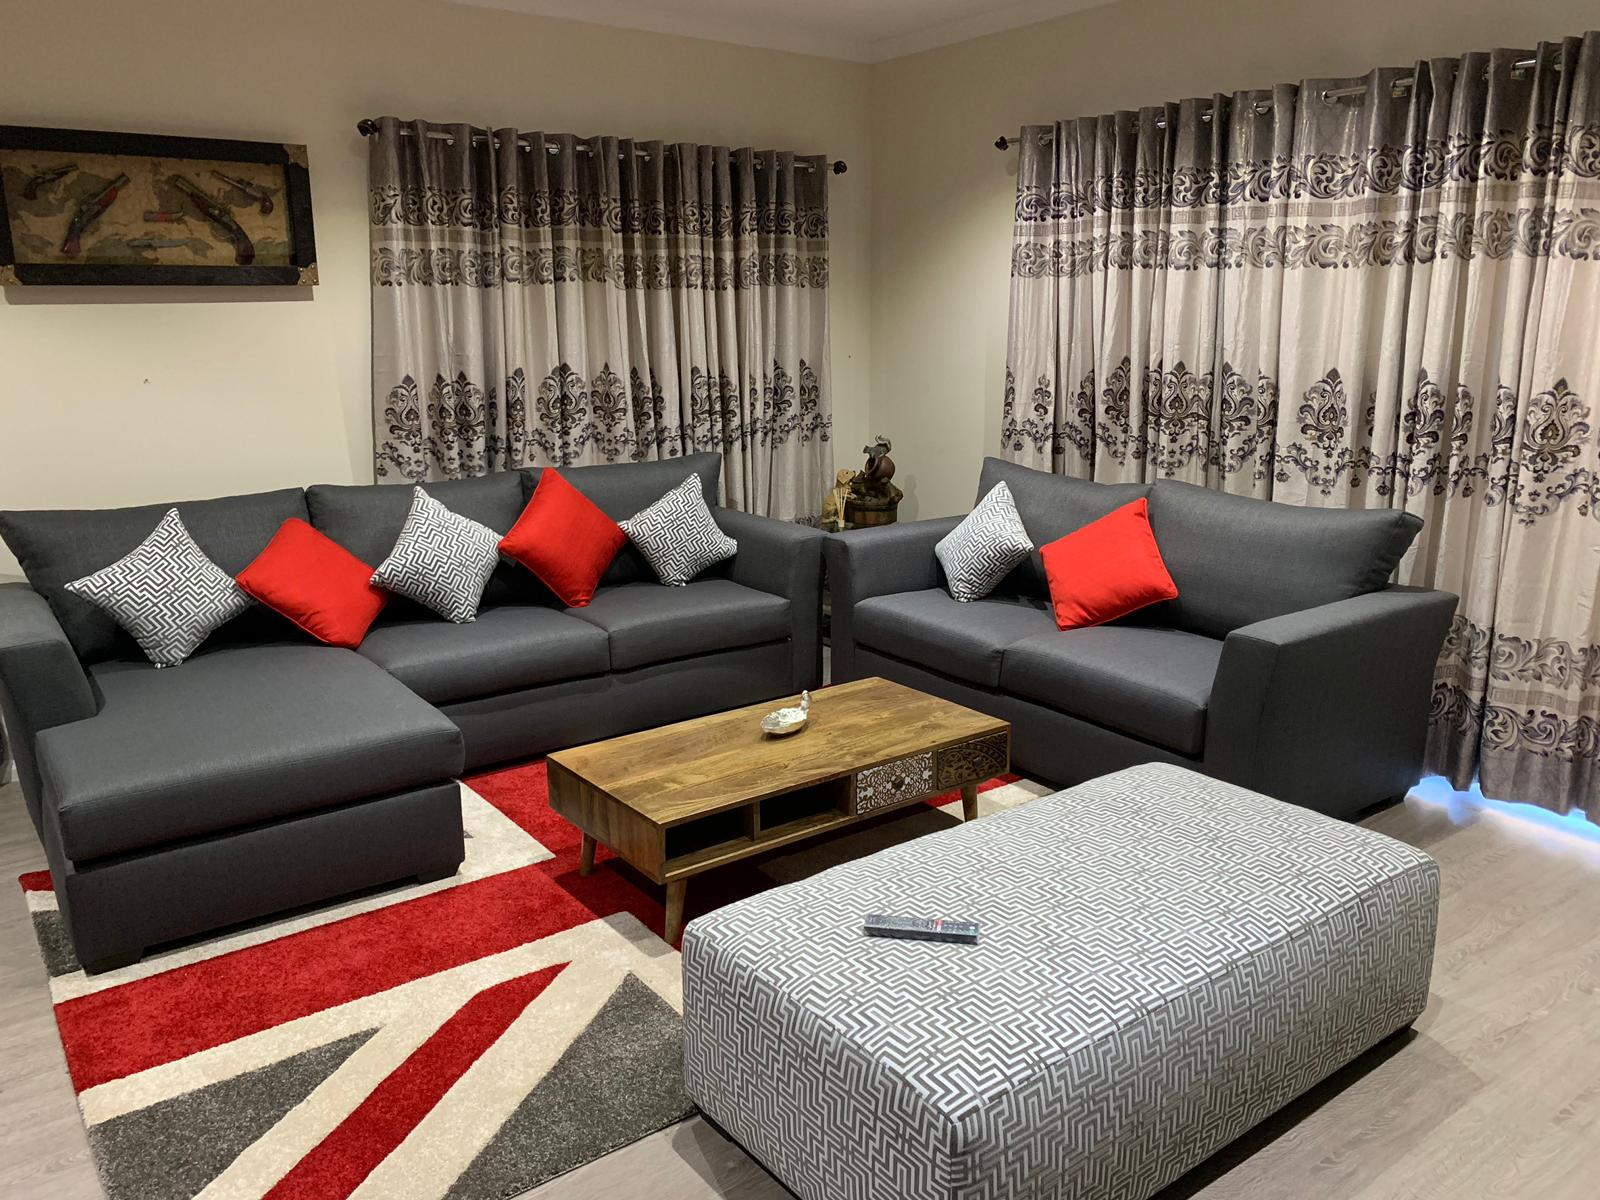 Buy New Design Sofa set with Center Table Online